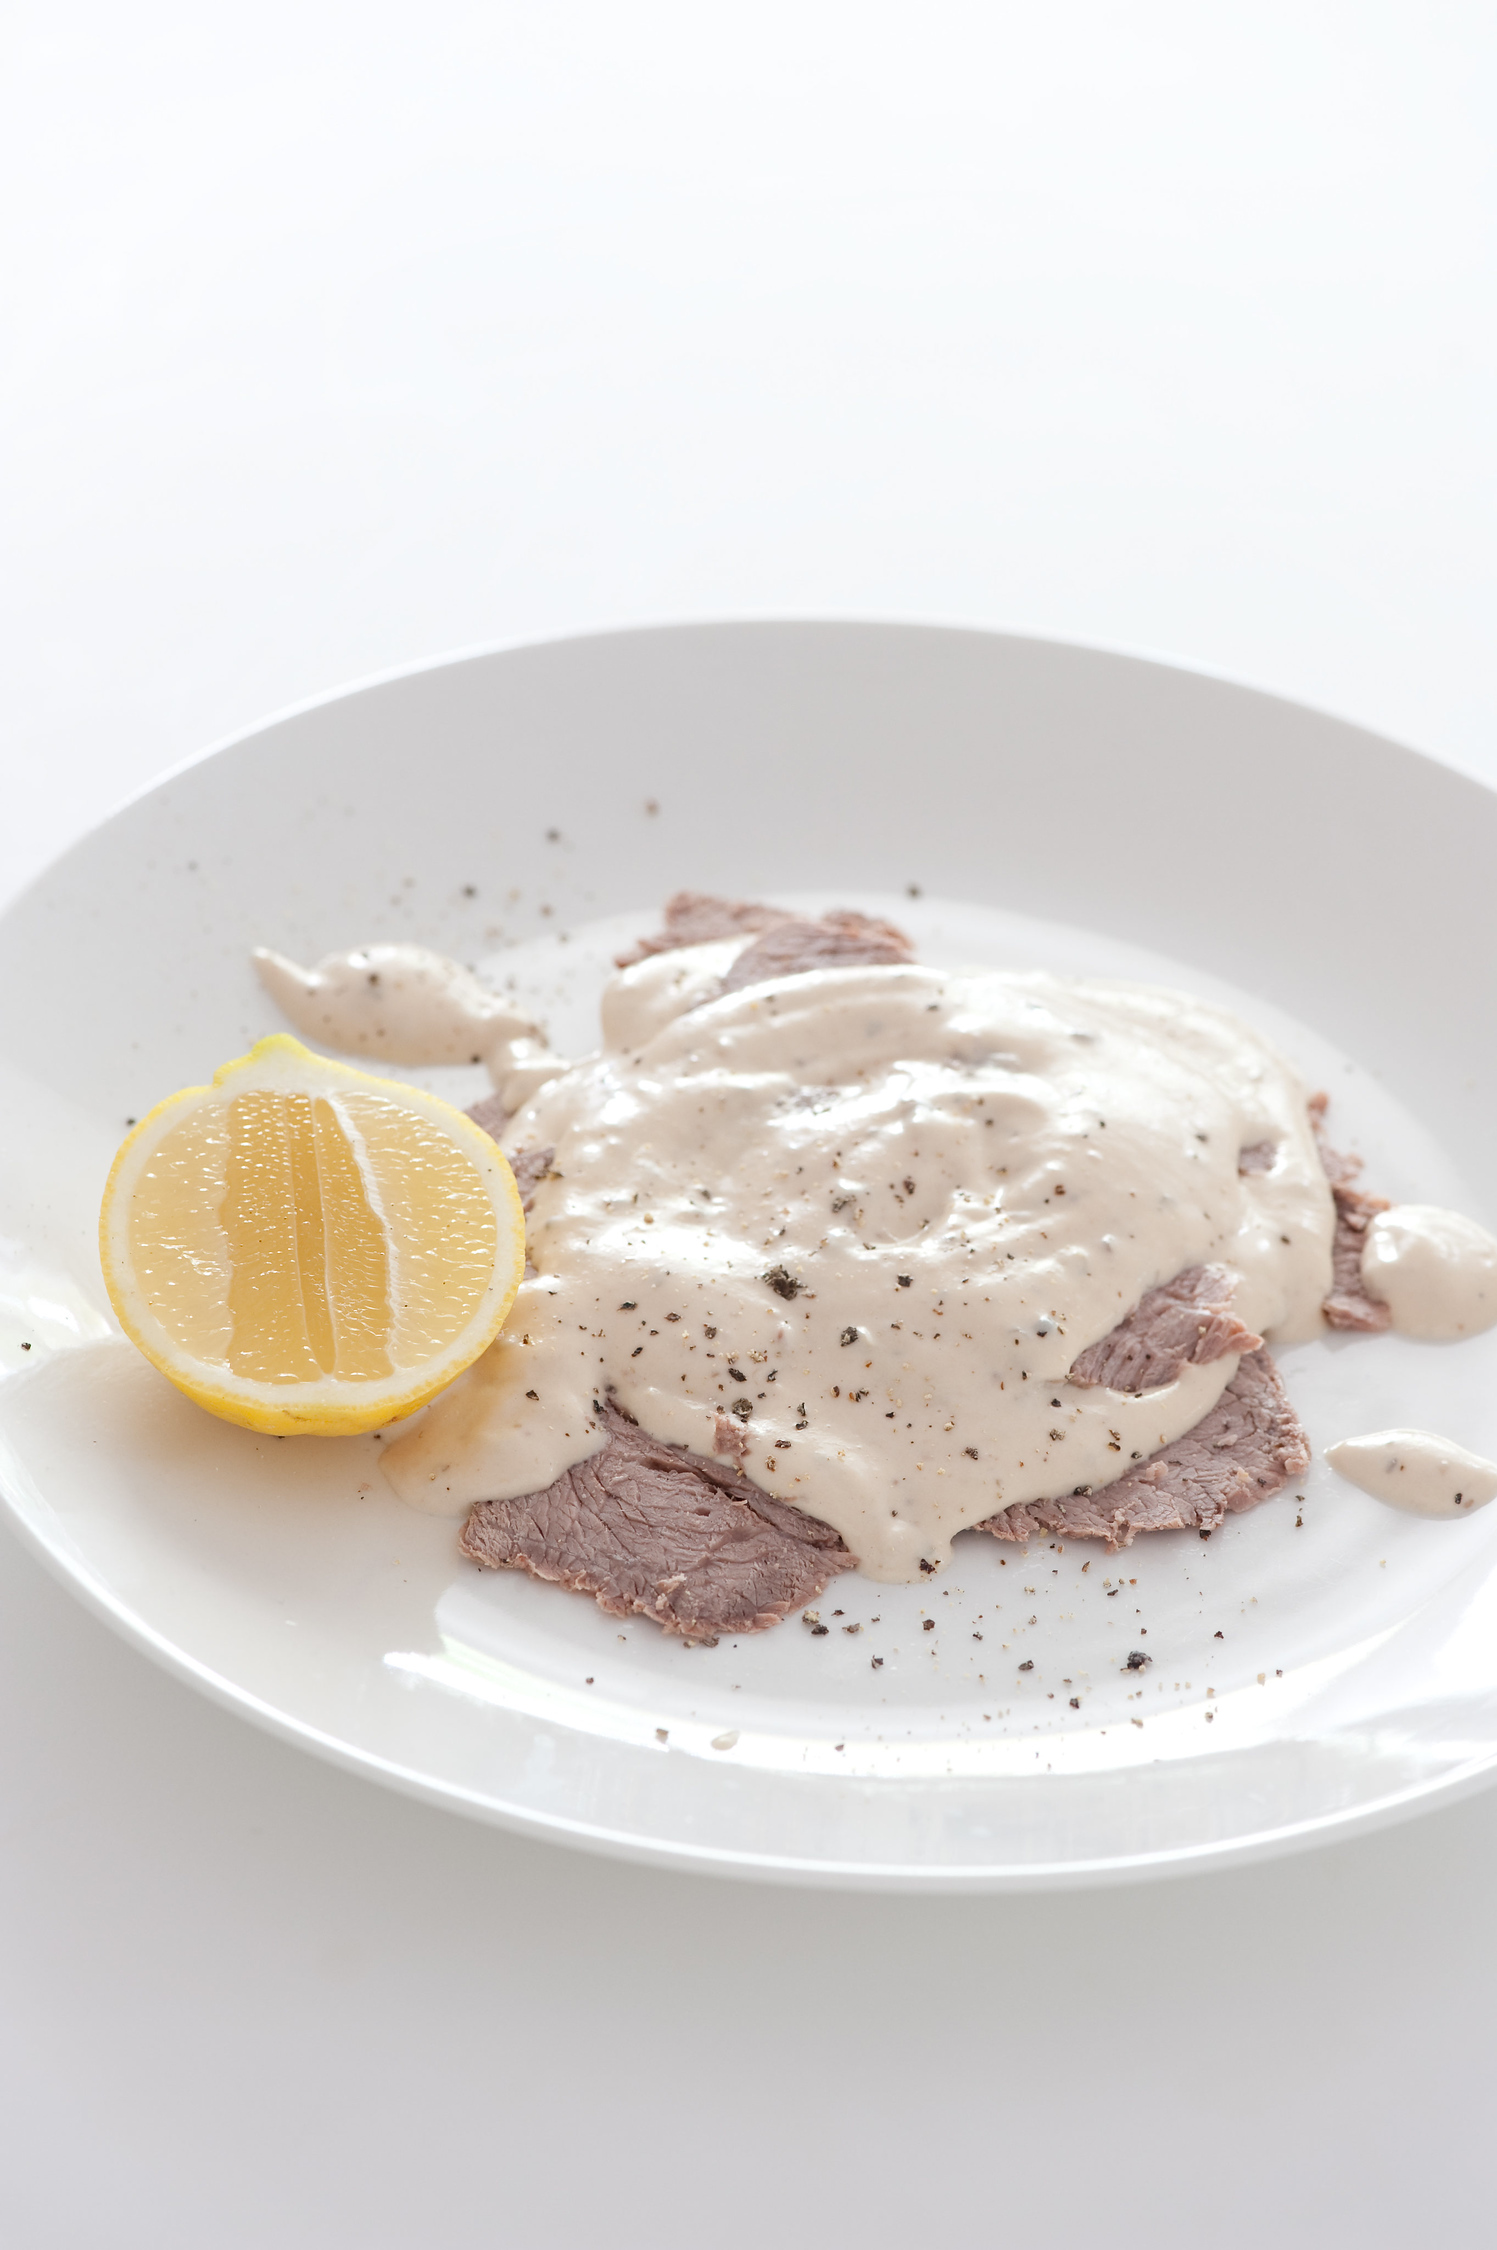 Vitello tonnato is veal in a tuna sauce on a white plate with lemon, a typical Milanese food.